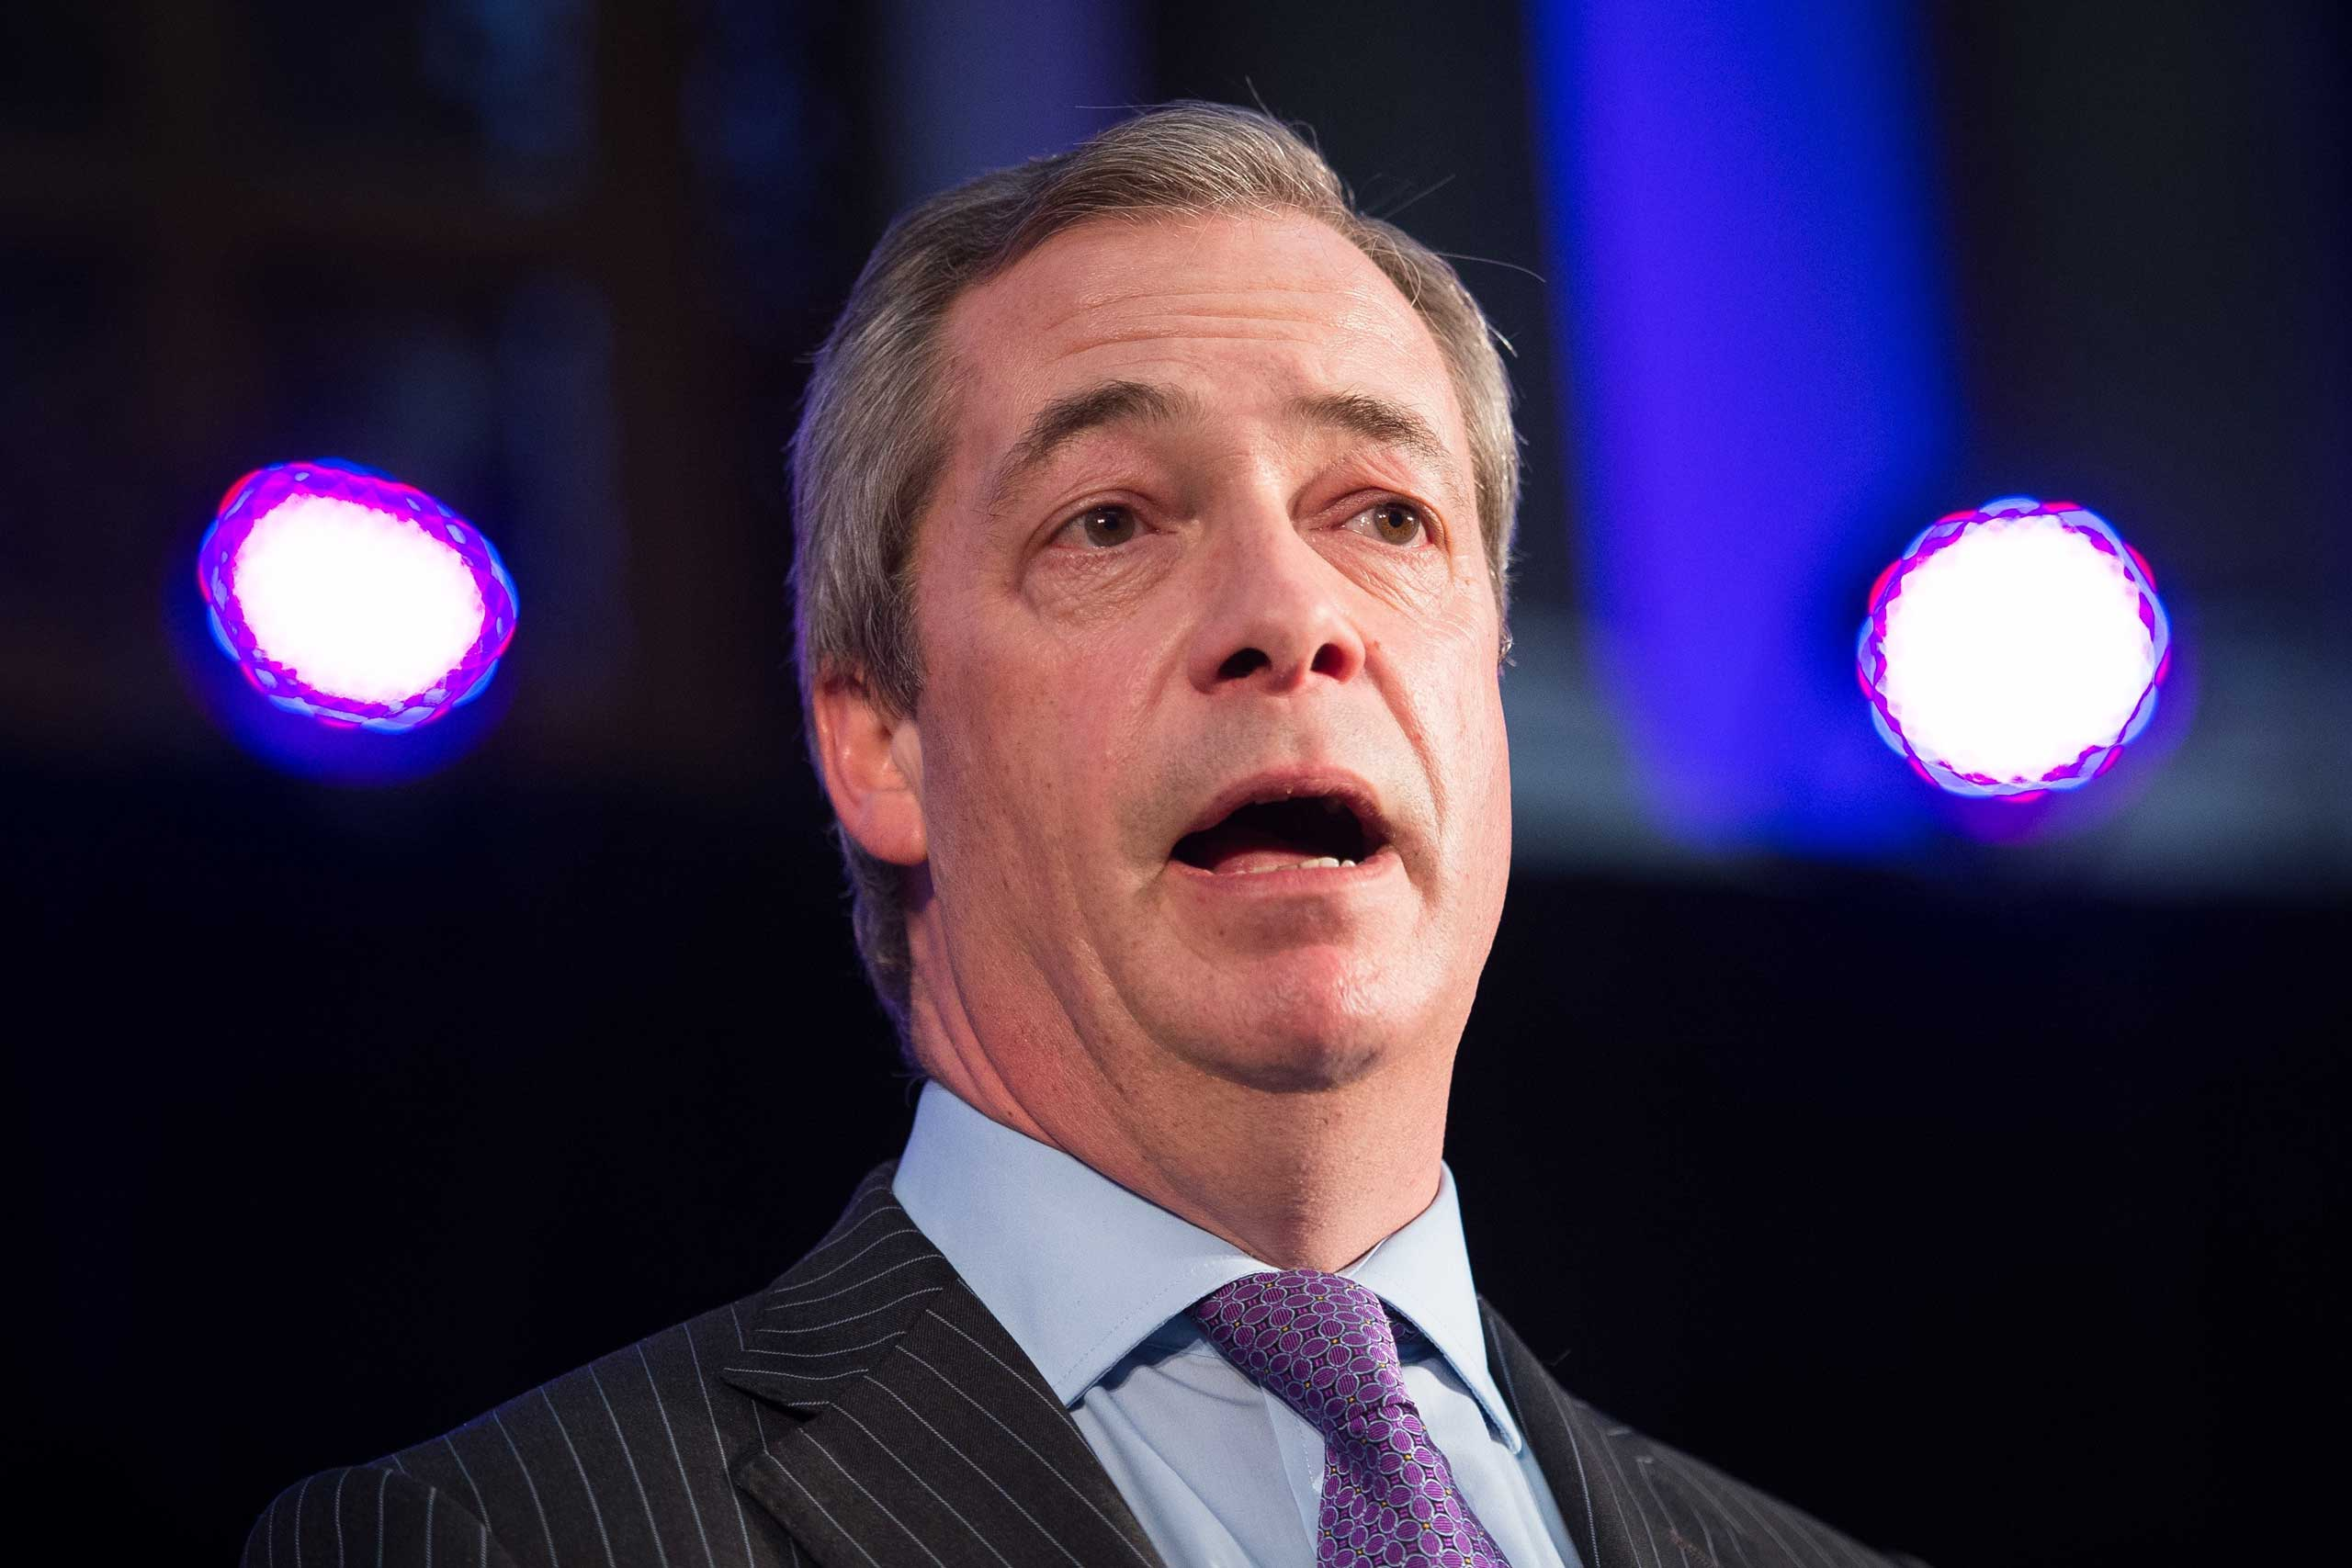 United Kingdom Independence Party (UKIP) leader Nigel Farage addresses supporters and media personnel in central London on March 4, 2015.